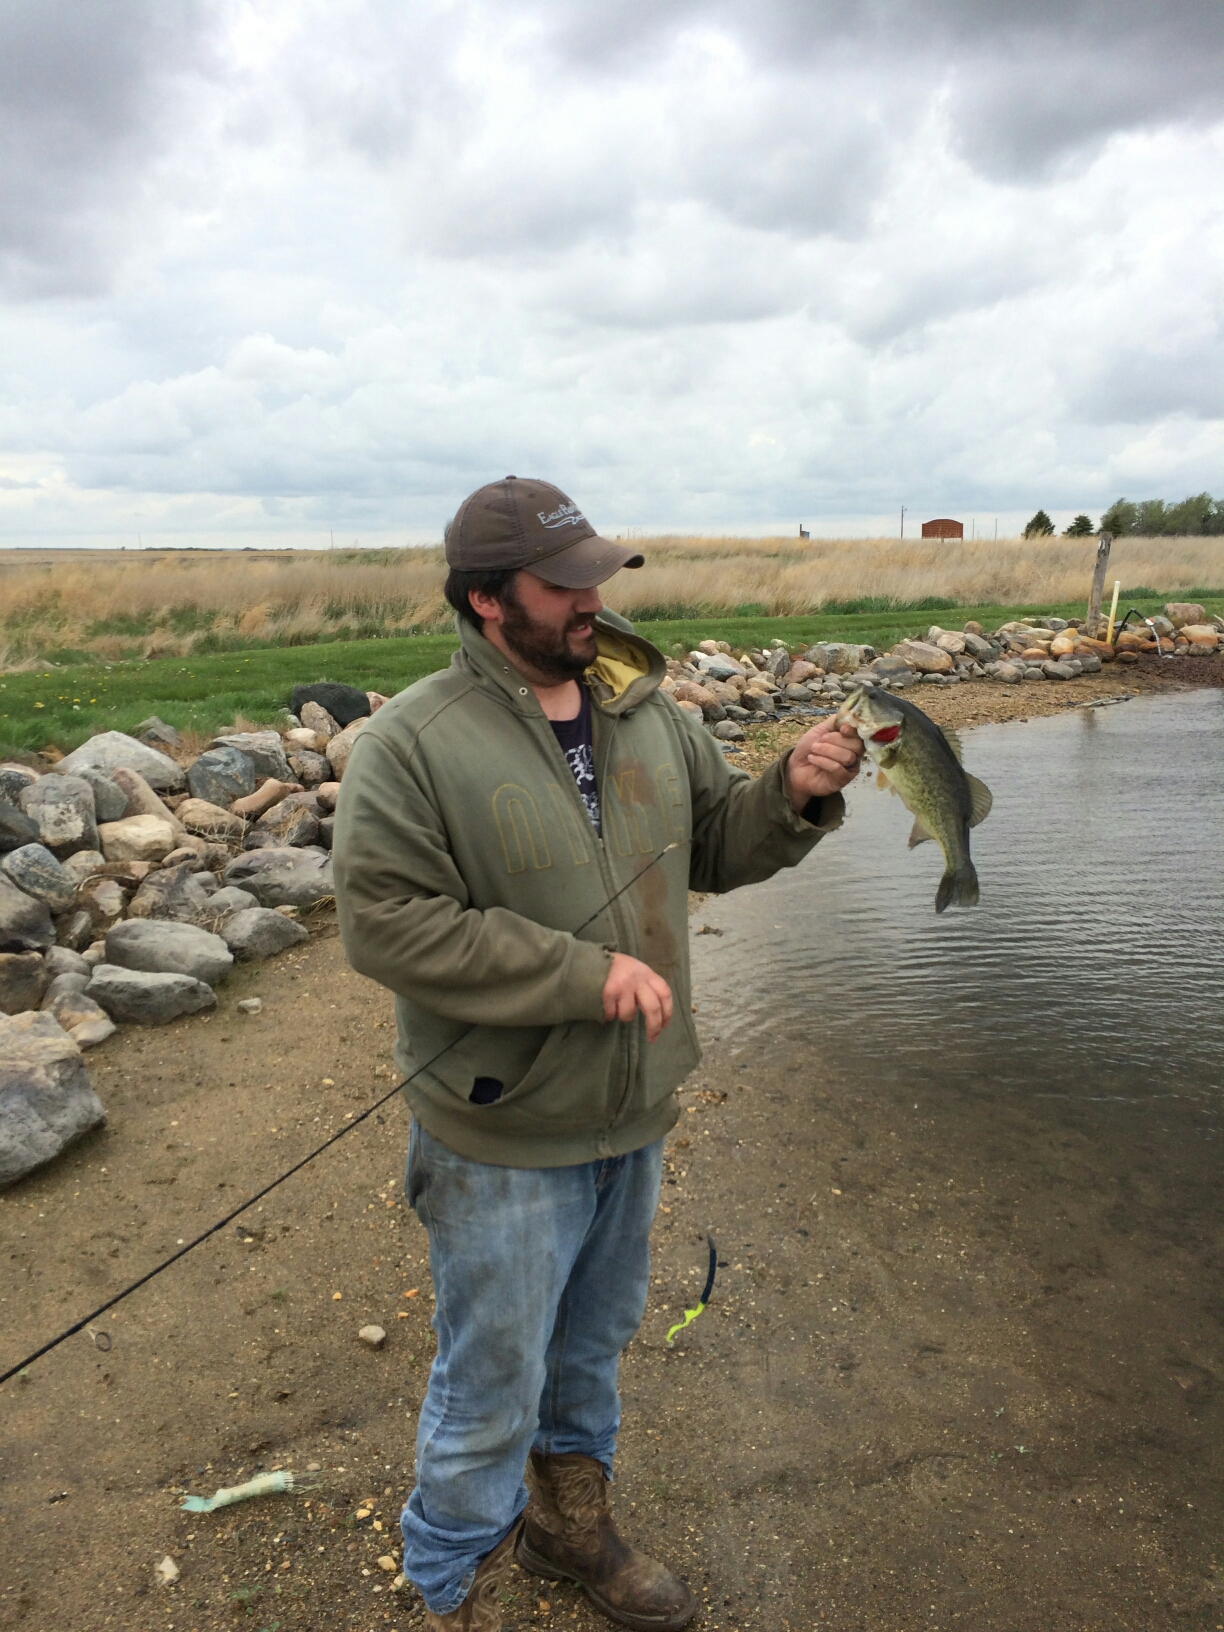 May 16th 2015 lake sharpe pierre sd bassin barry for Missouri river fishing report south dakota